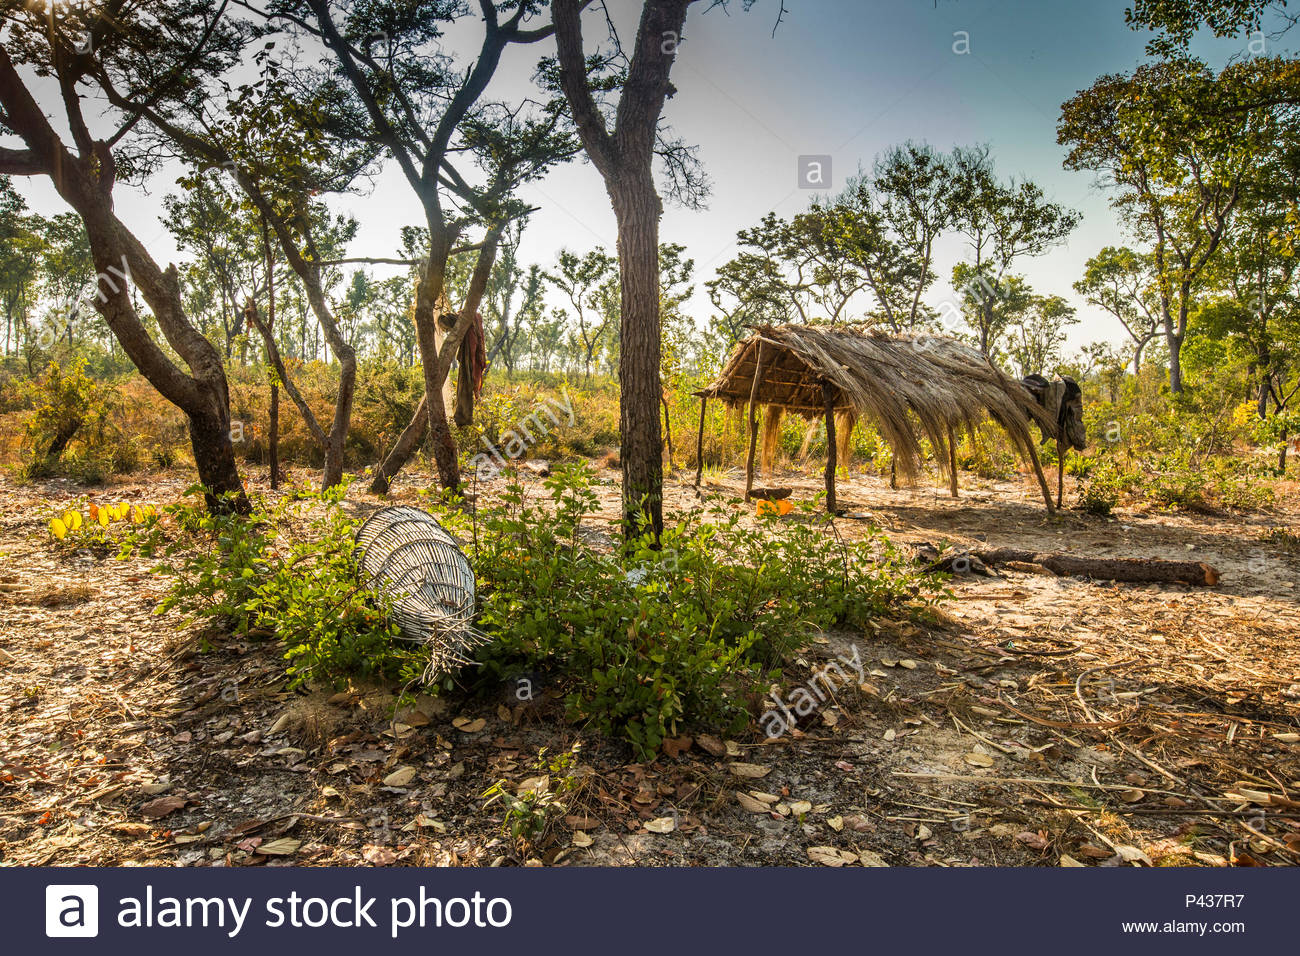 A built structure in Angola. - Stock Image